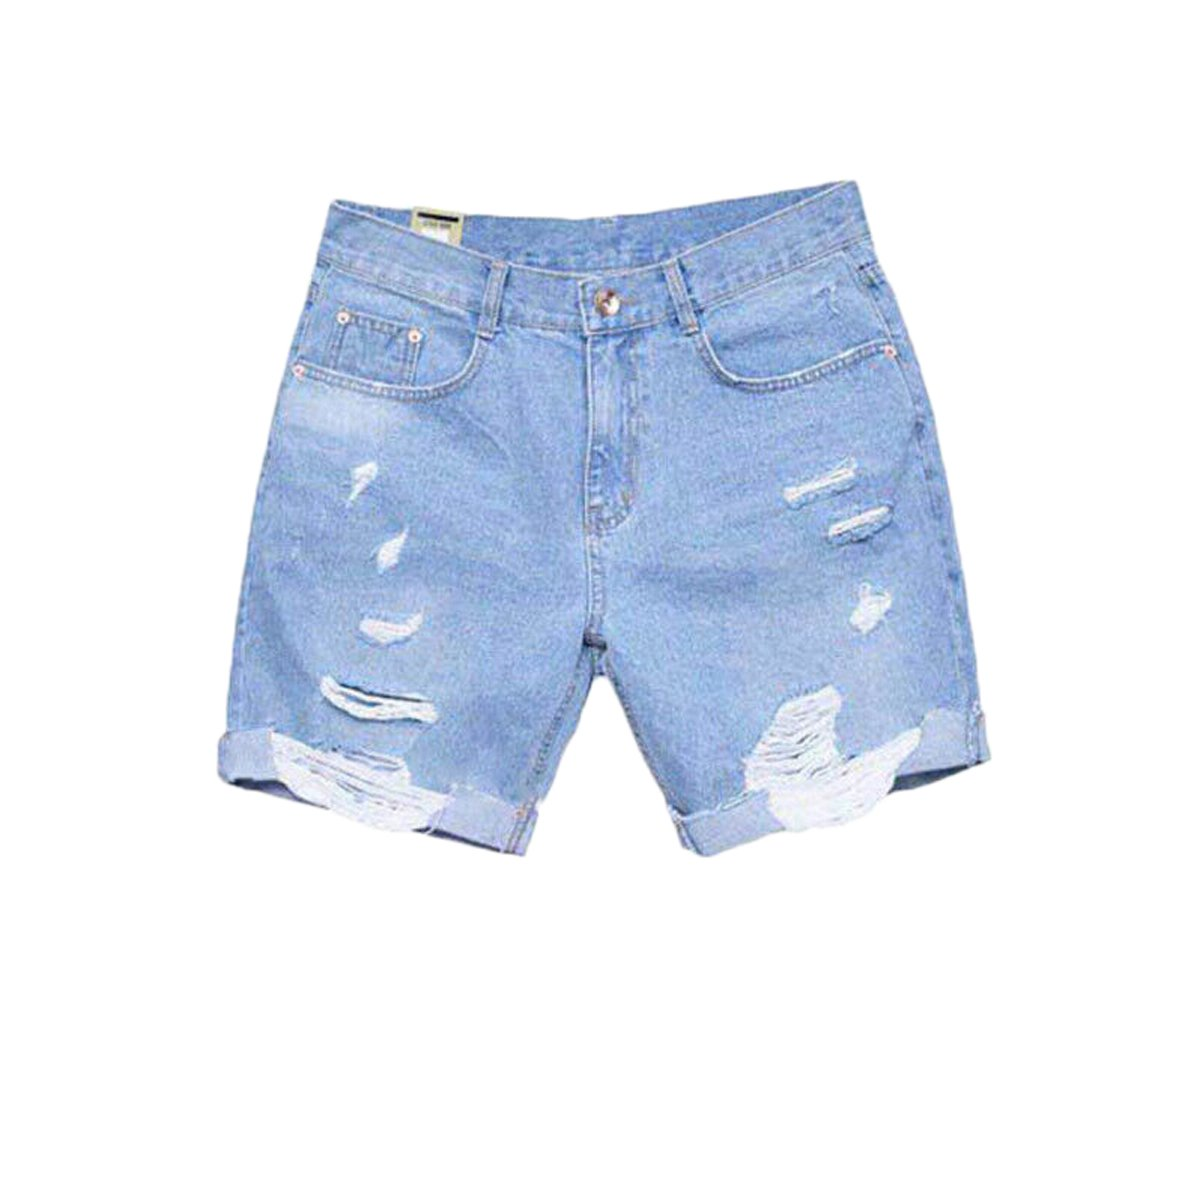 Men Casual Loose Fit Ripped Distressed Half Moto Jeans Denim Shorts